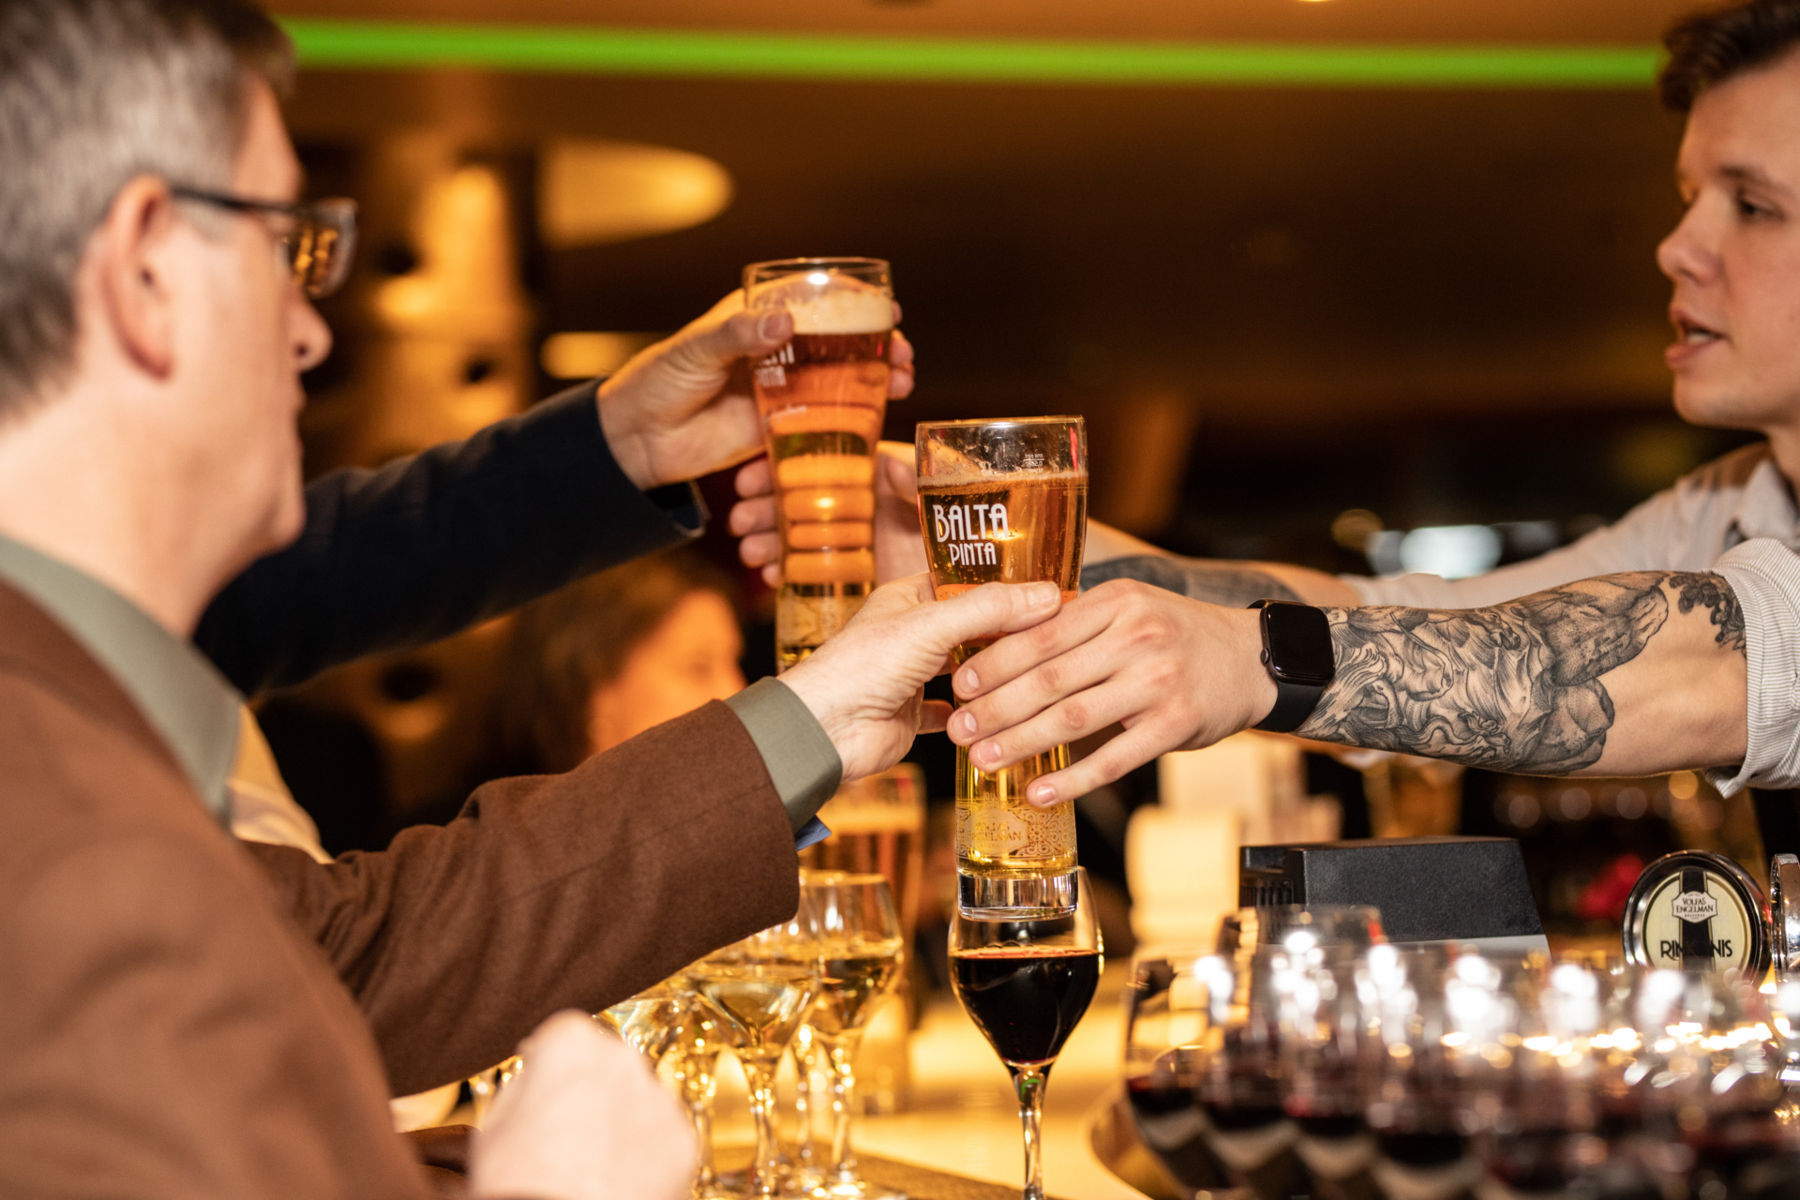 To beer or not to beer, is a rhetorical question here